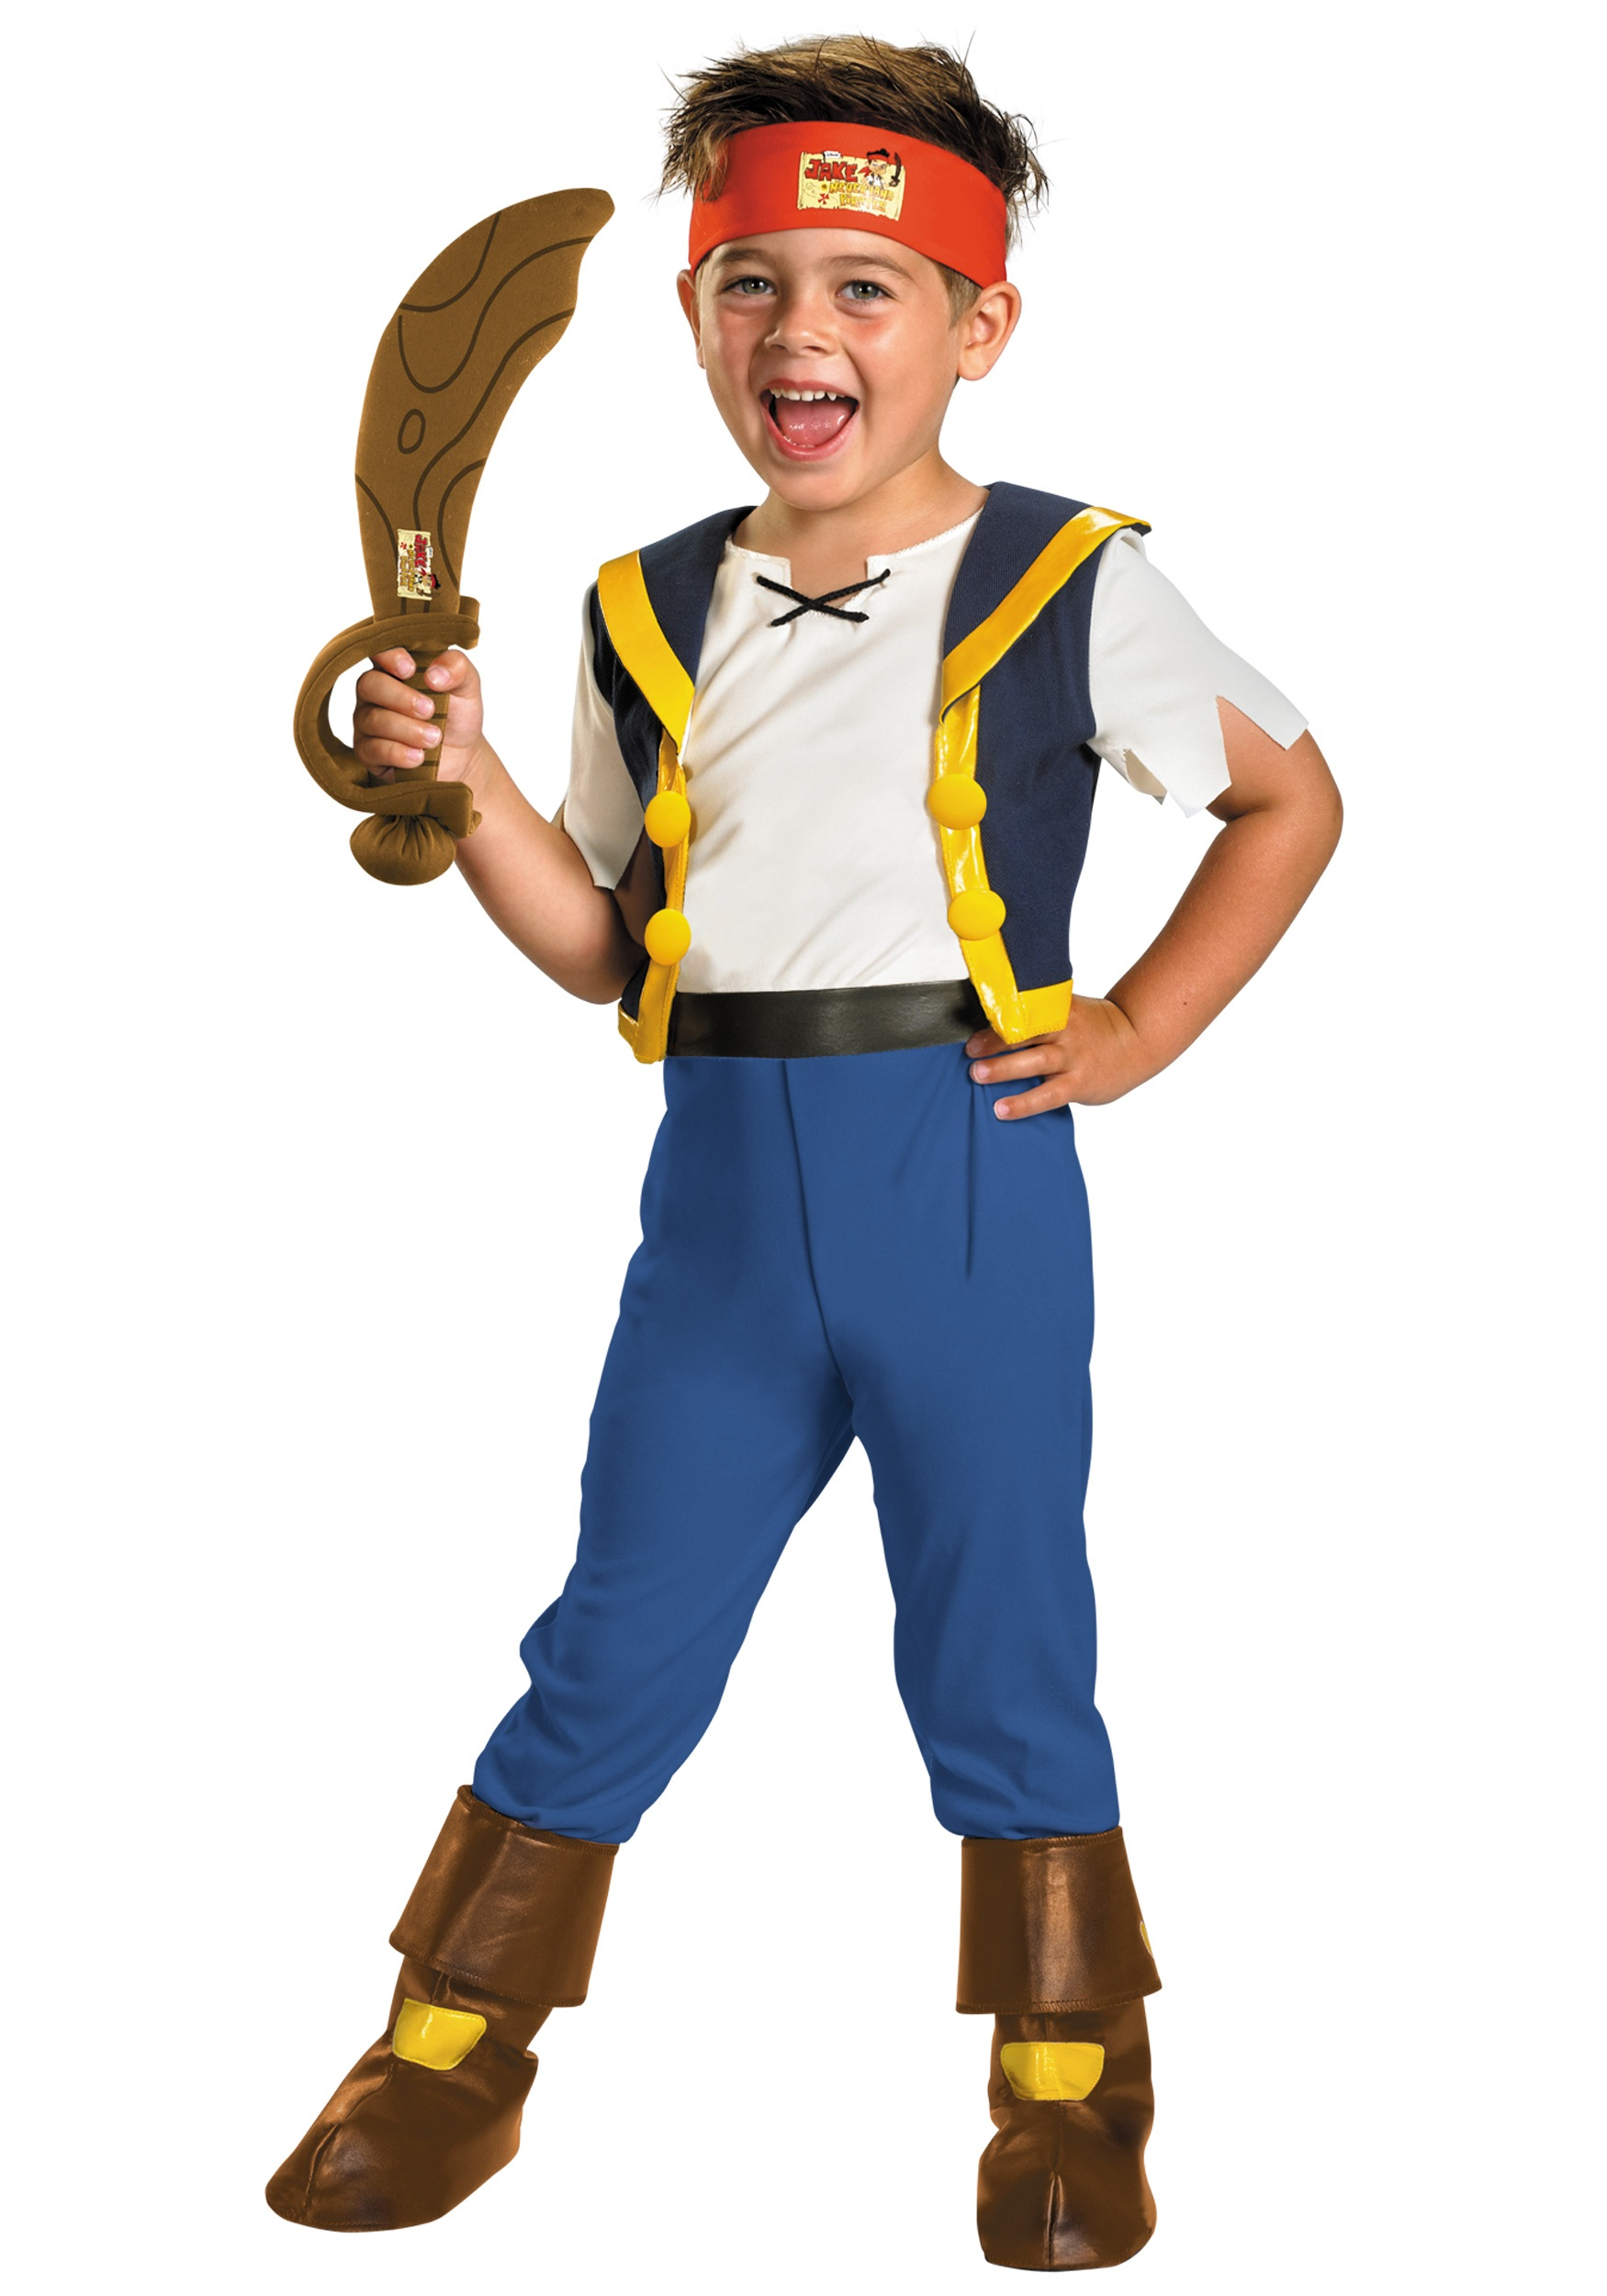 Toddler Jake Never Land Pirate Costume  sc 1 st  Halloween Costumes : pirate costume toddler  - Germanpascual.Com